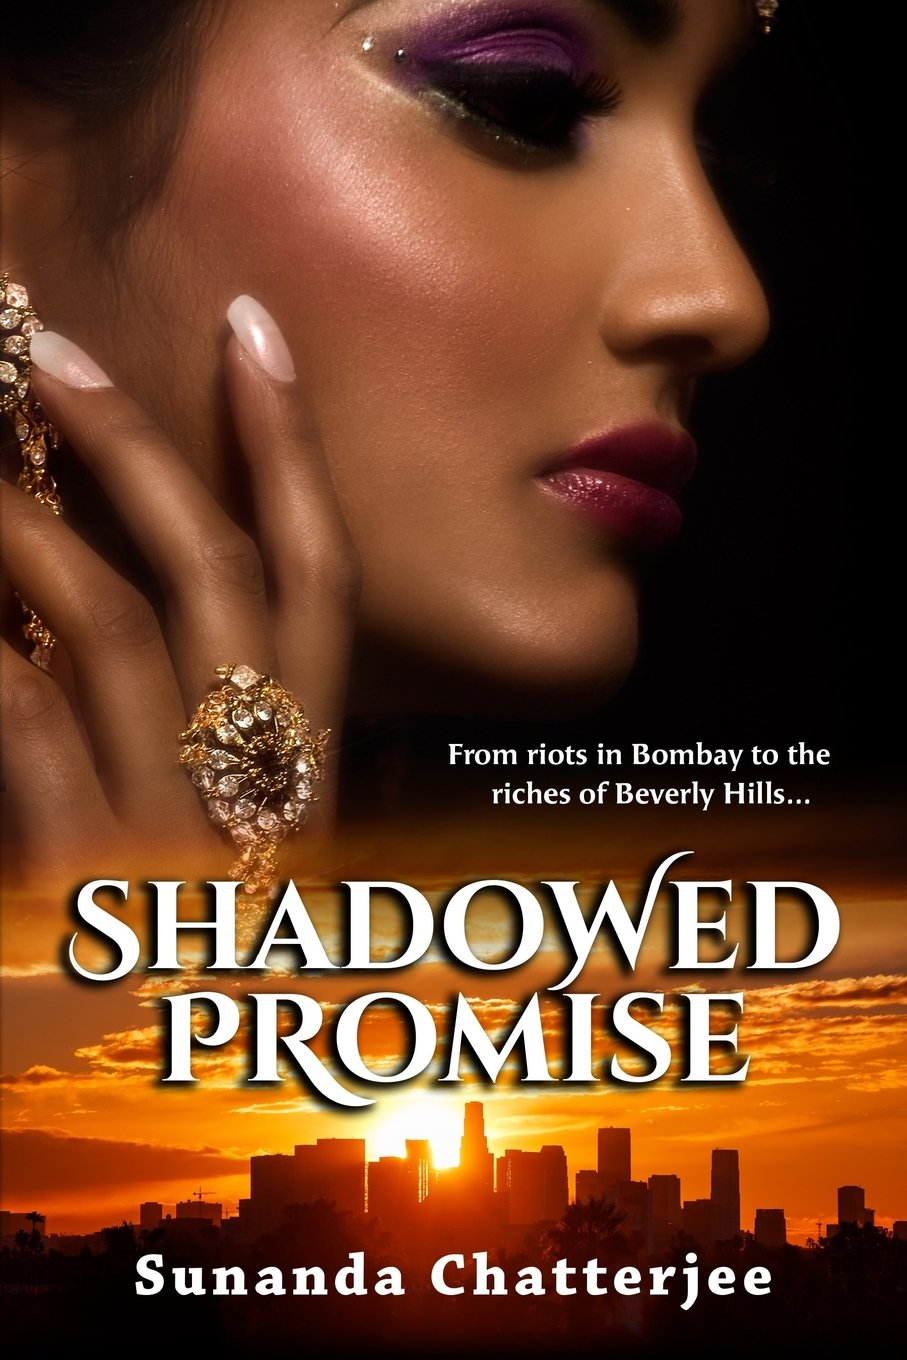 Read Online Shadowed Promise: From riots in Bombay to the riches of Beverly Hills... PDF